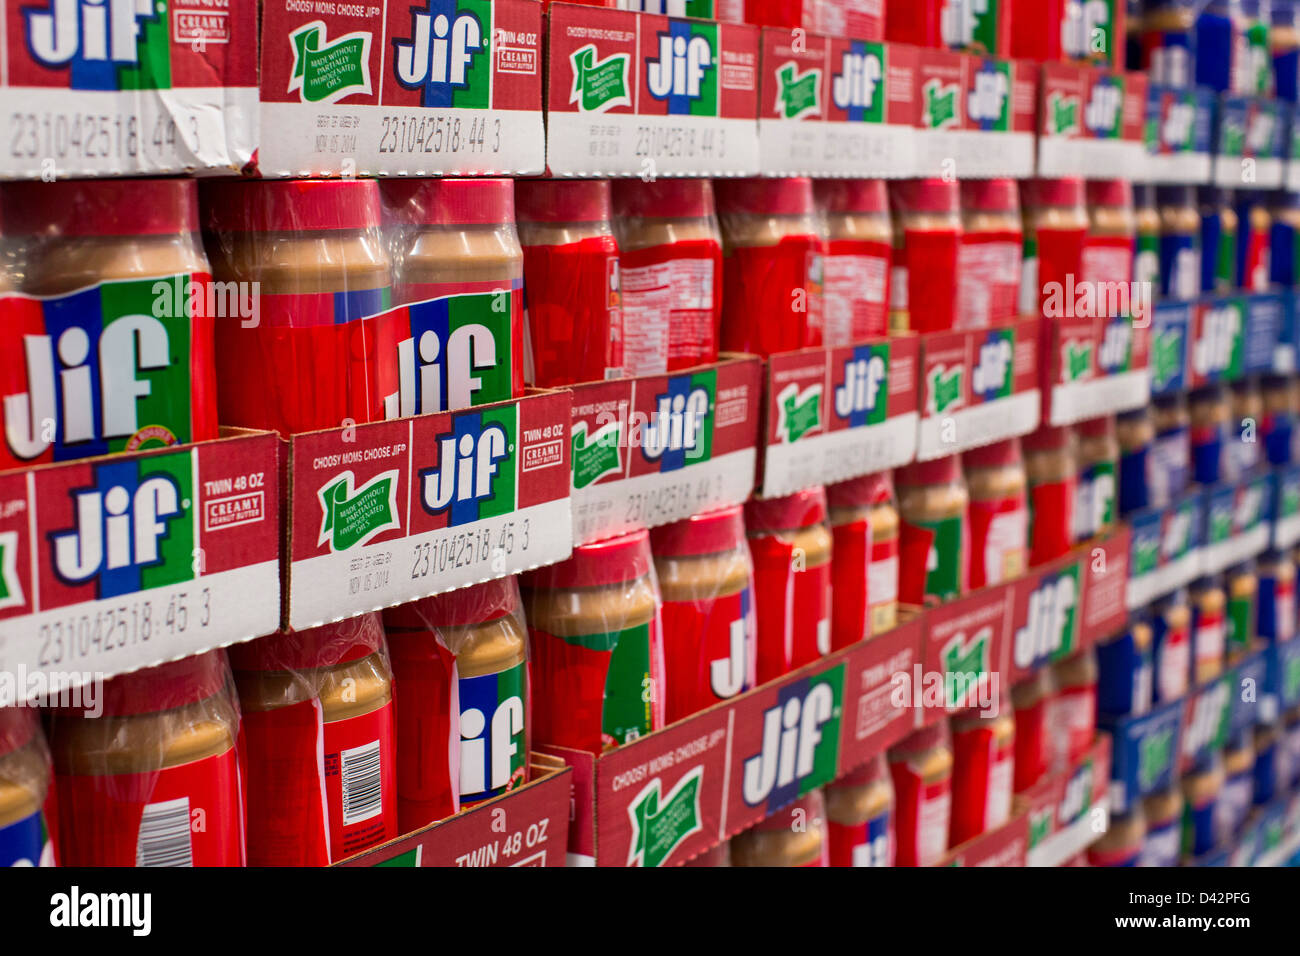 Jif peanut butter on display at a costco wholesale warehouse club jif peanut butter on display at a costco wholesale warehouse club stock photo 54151316 alamy thecheapjerseys Images